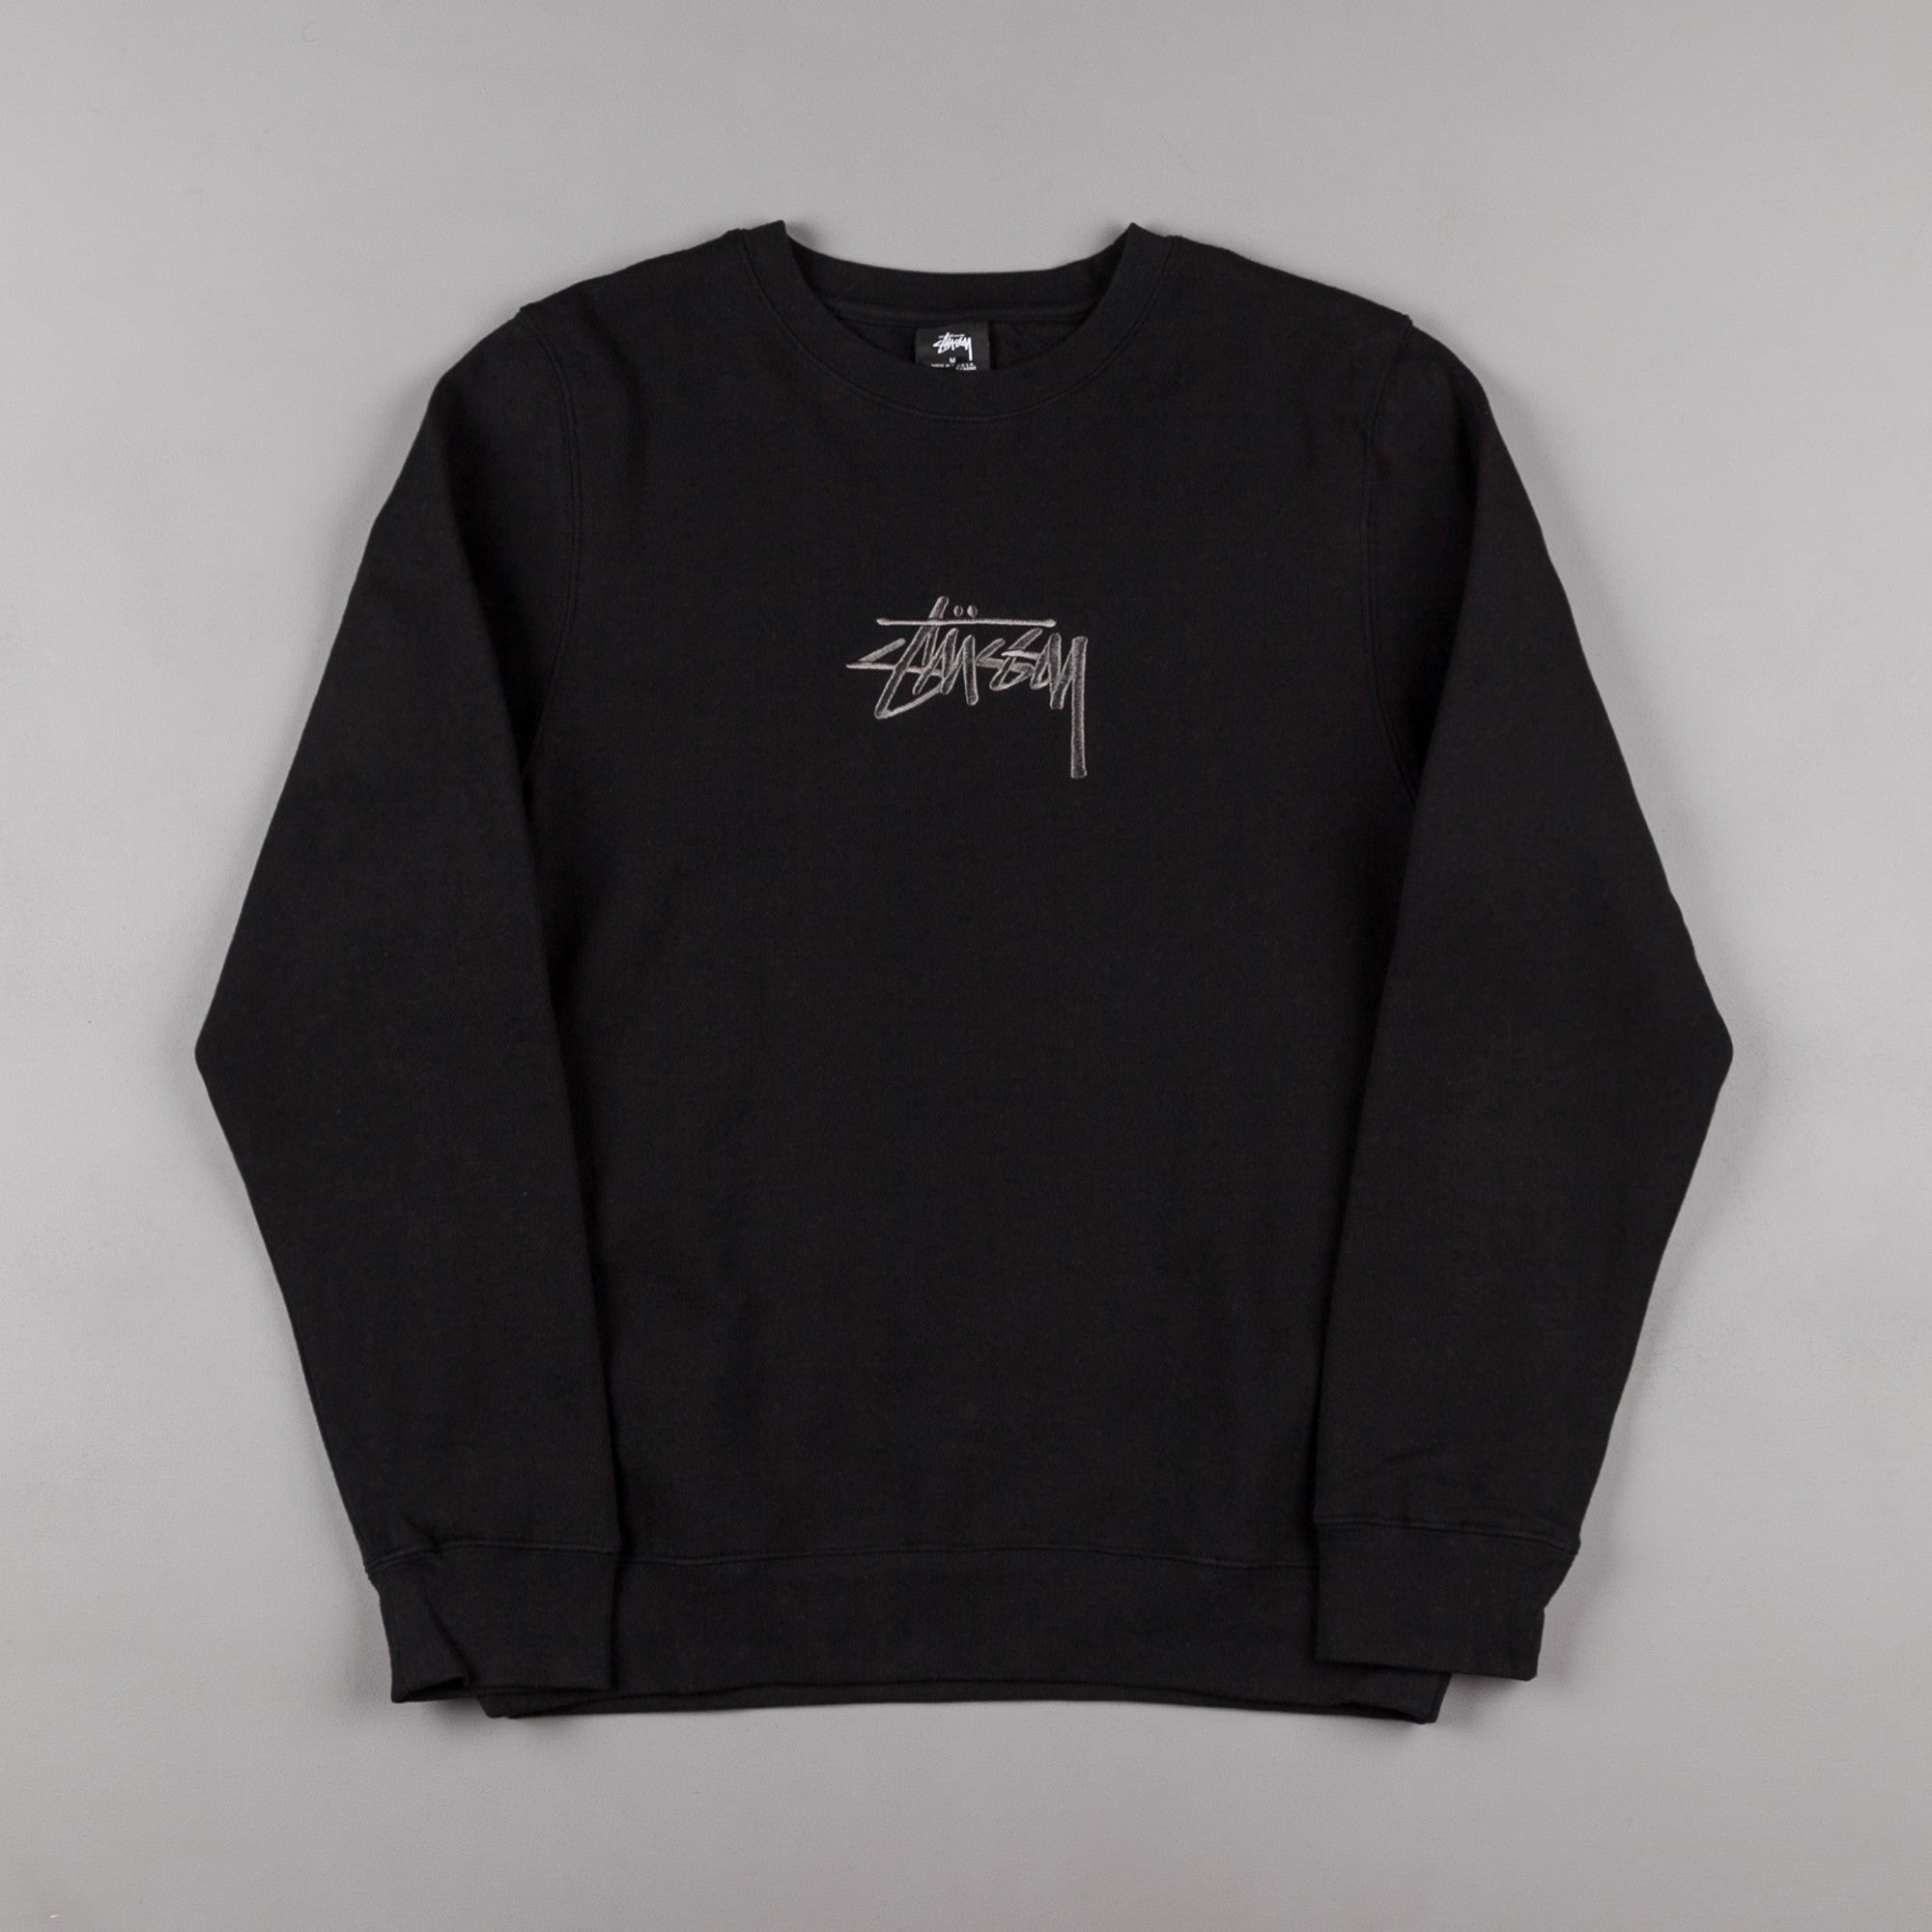 Stussy New Stock Crewneck Sweatshirt - Black